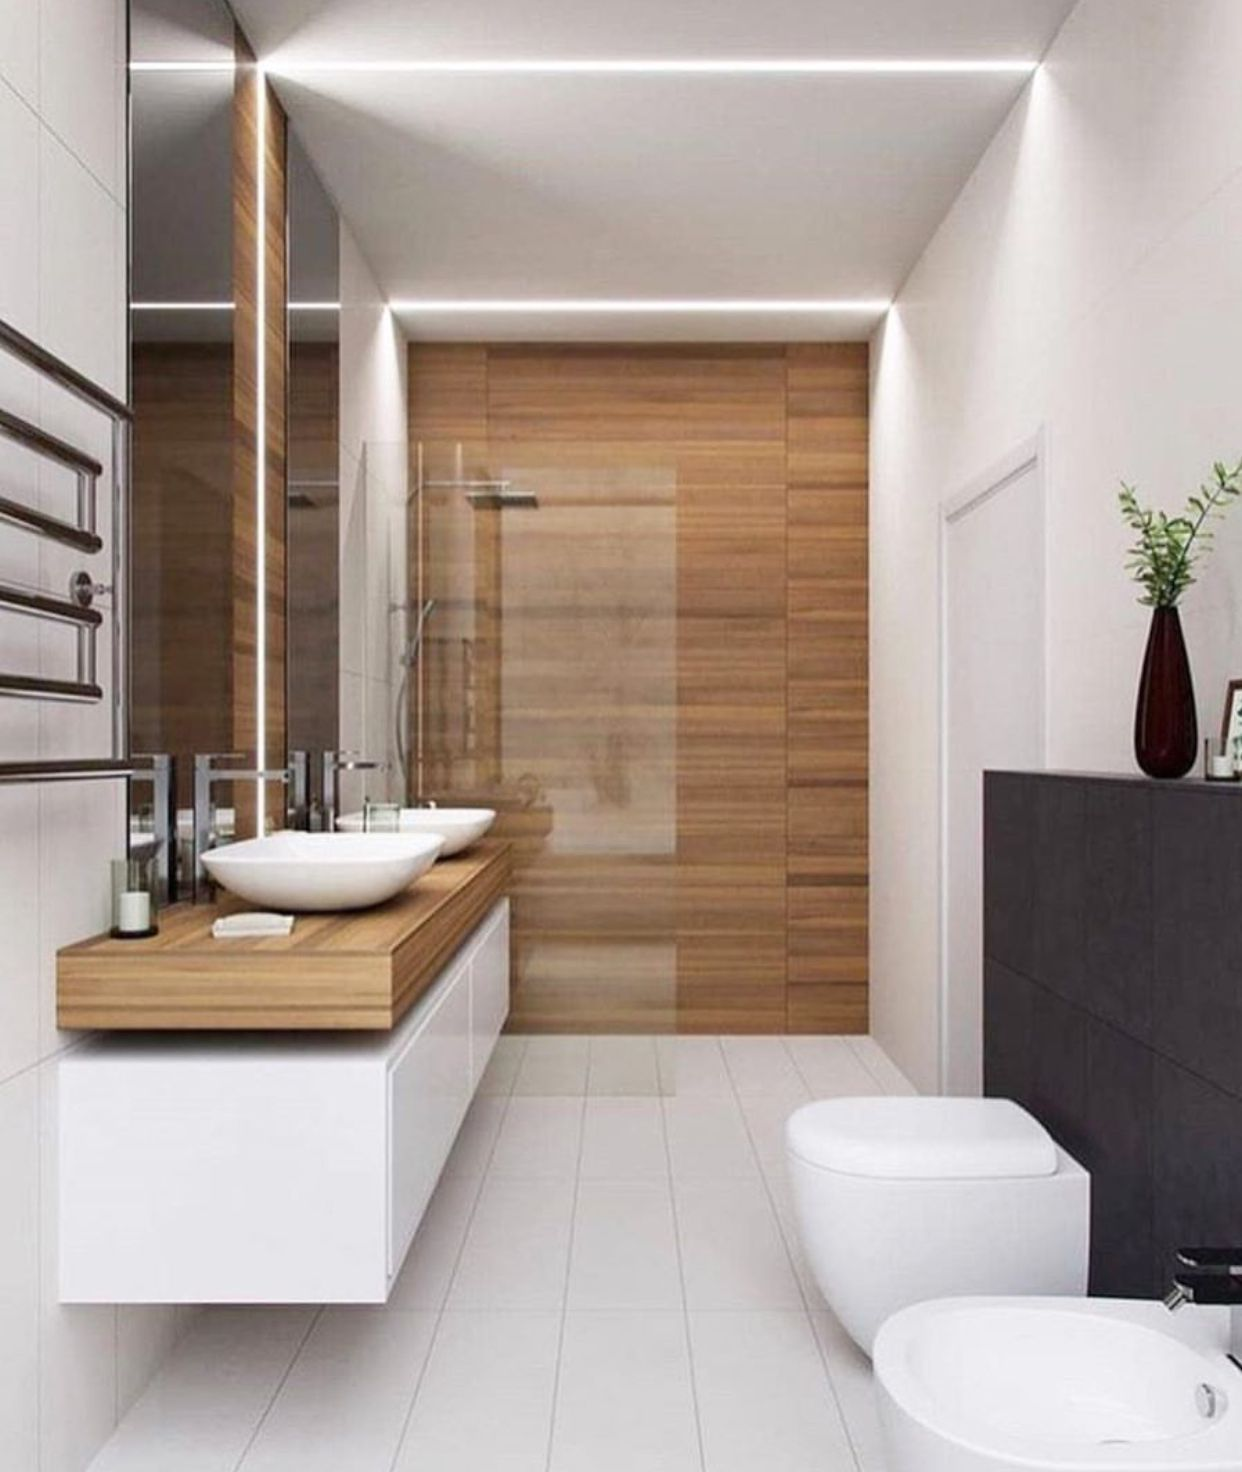 Bathroom Ideas: 10 Small Bathroom Ideas For Minimalist Houses